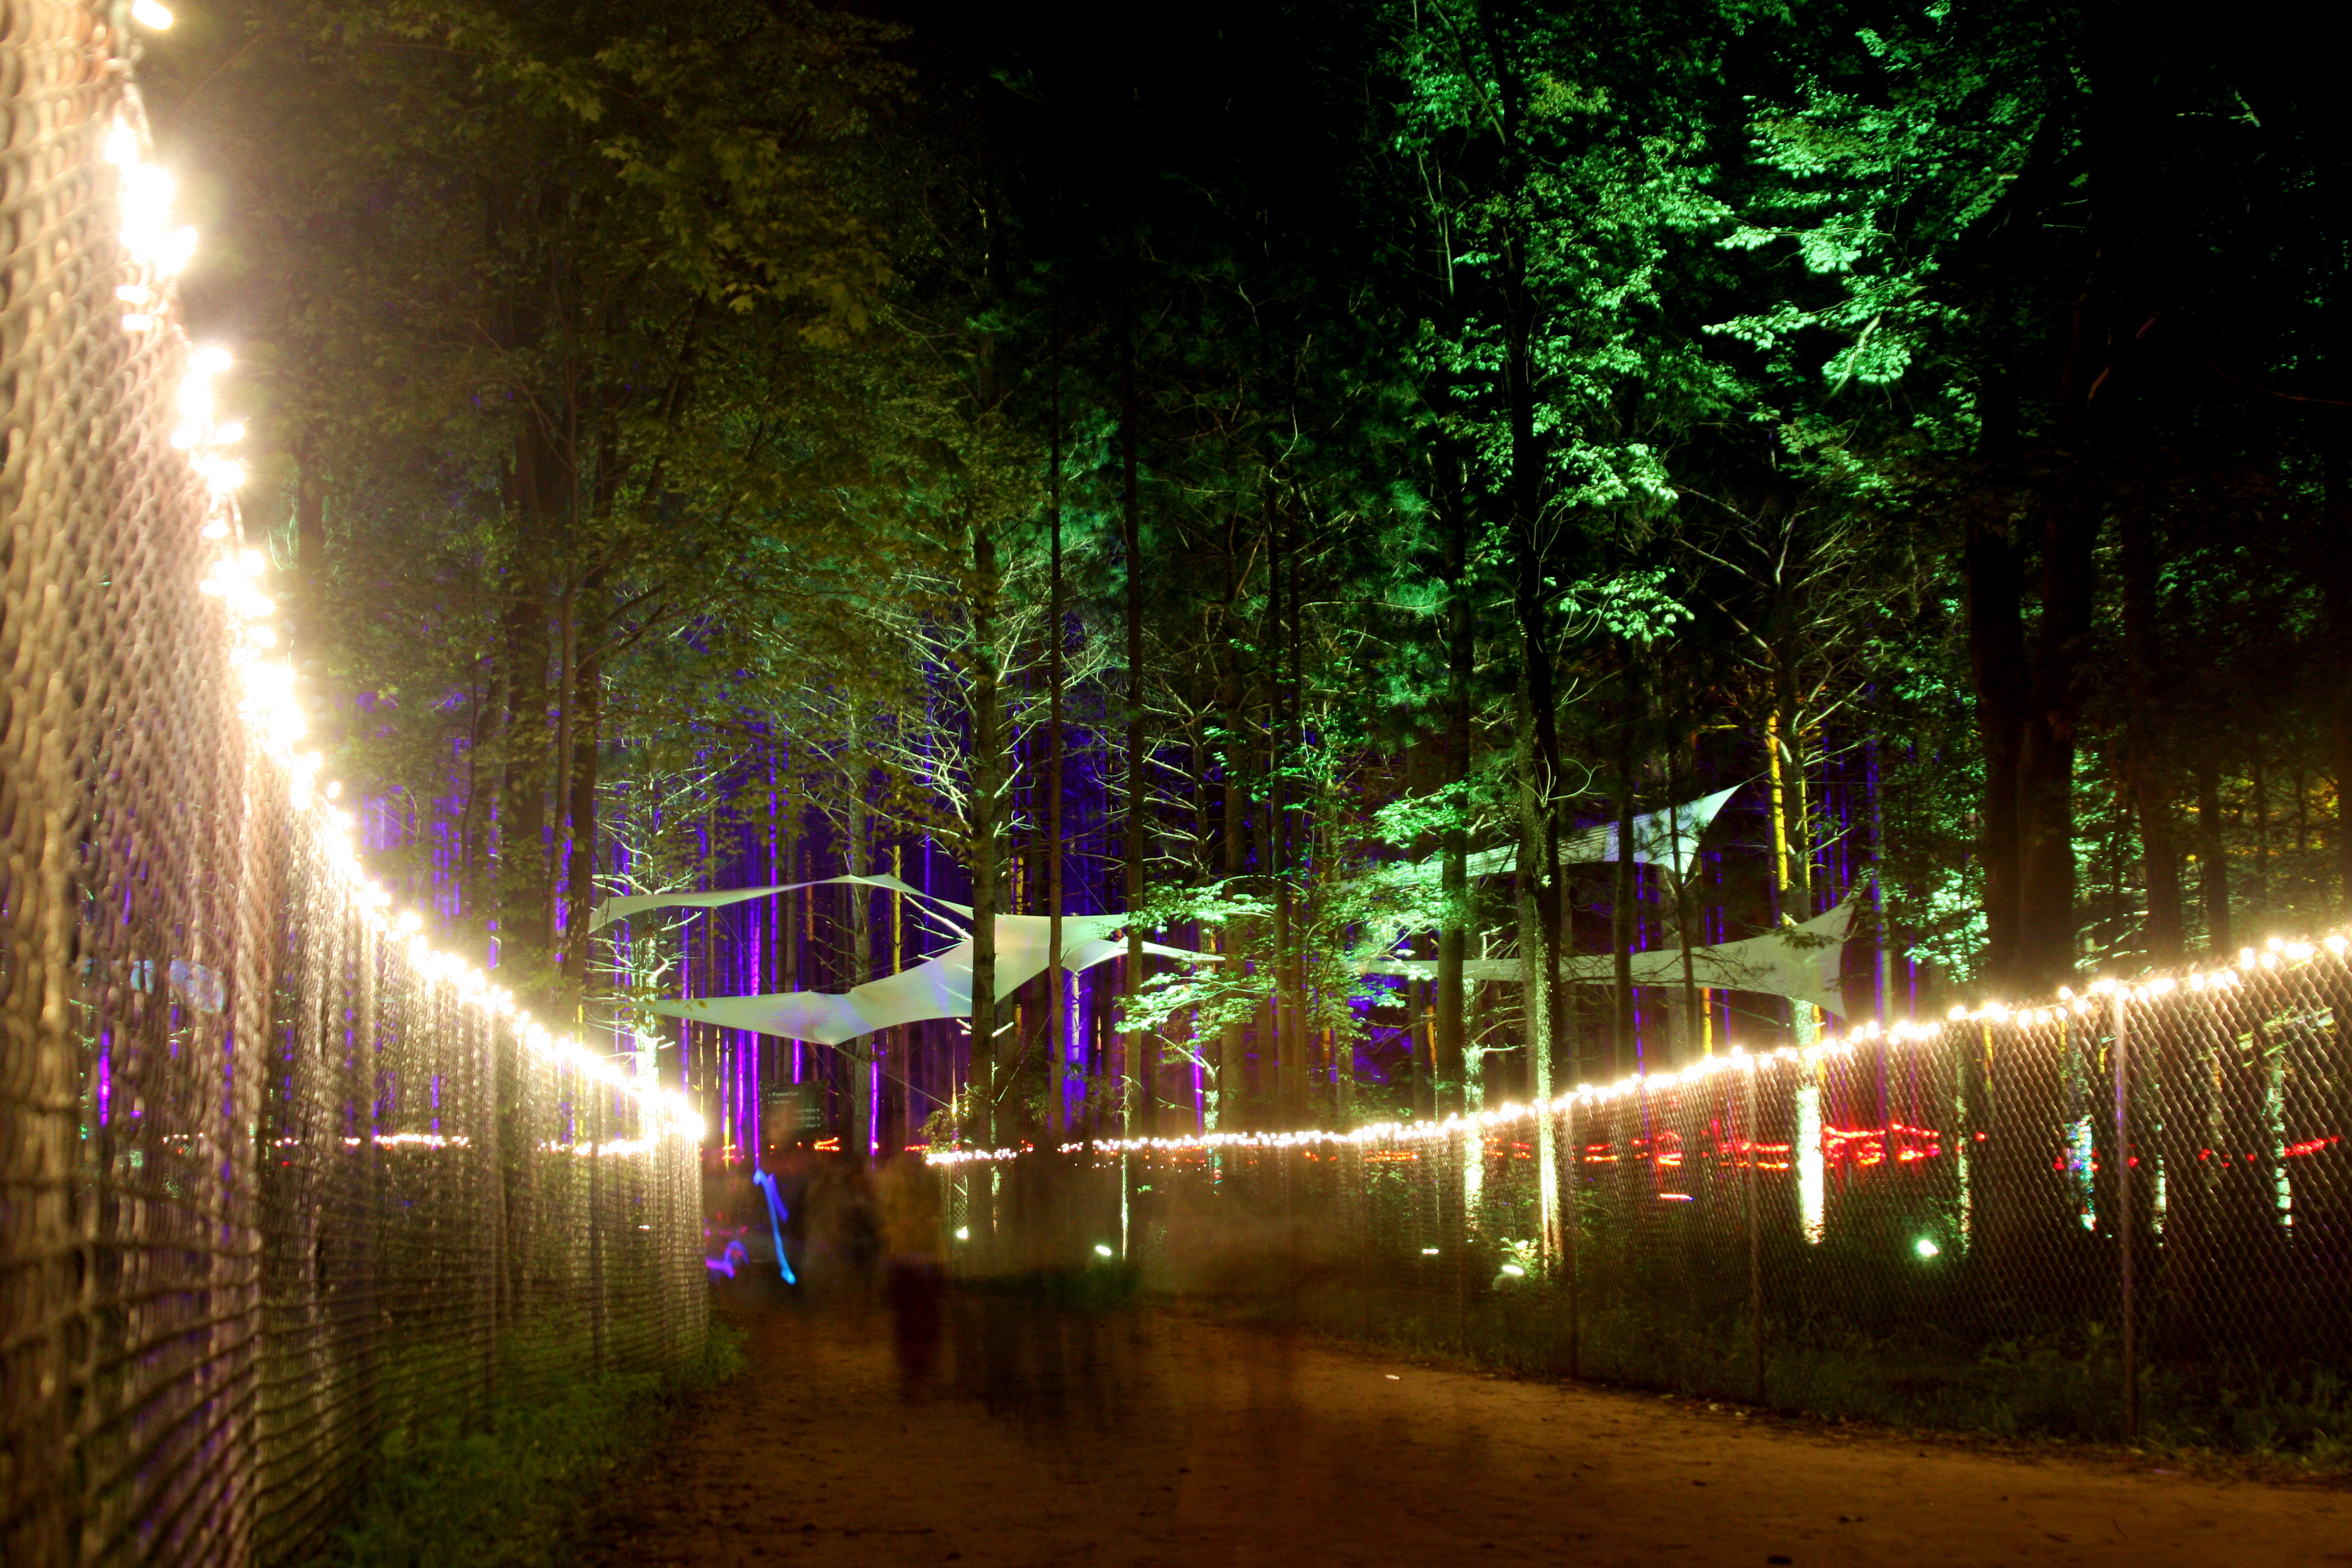 String Lights Music : ELECTRIC FOREST JULY 4TH WEEKEND, 2011 DOUBLE JJ RESORT ROTHBURY, MICHIGAN FEATURING HEADLINERS ...